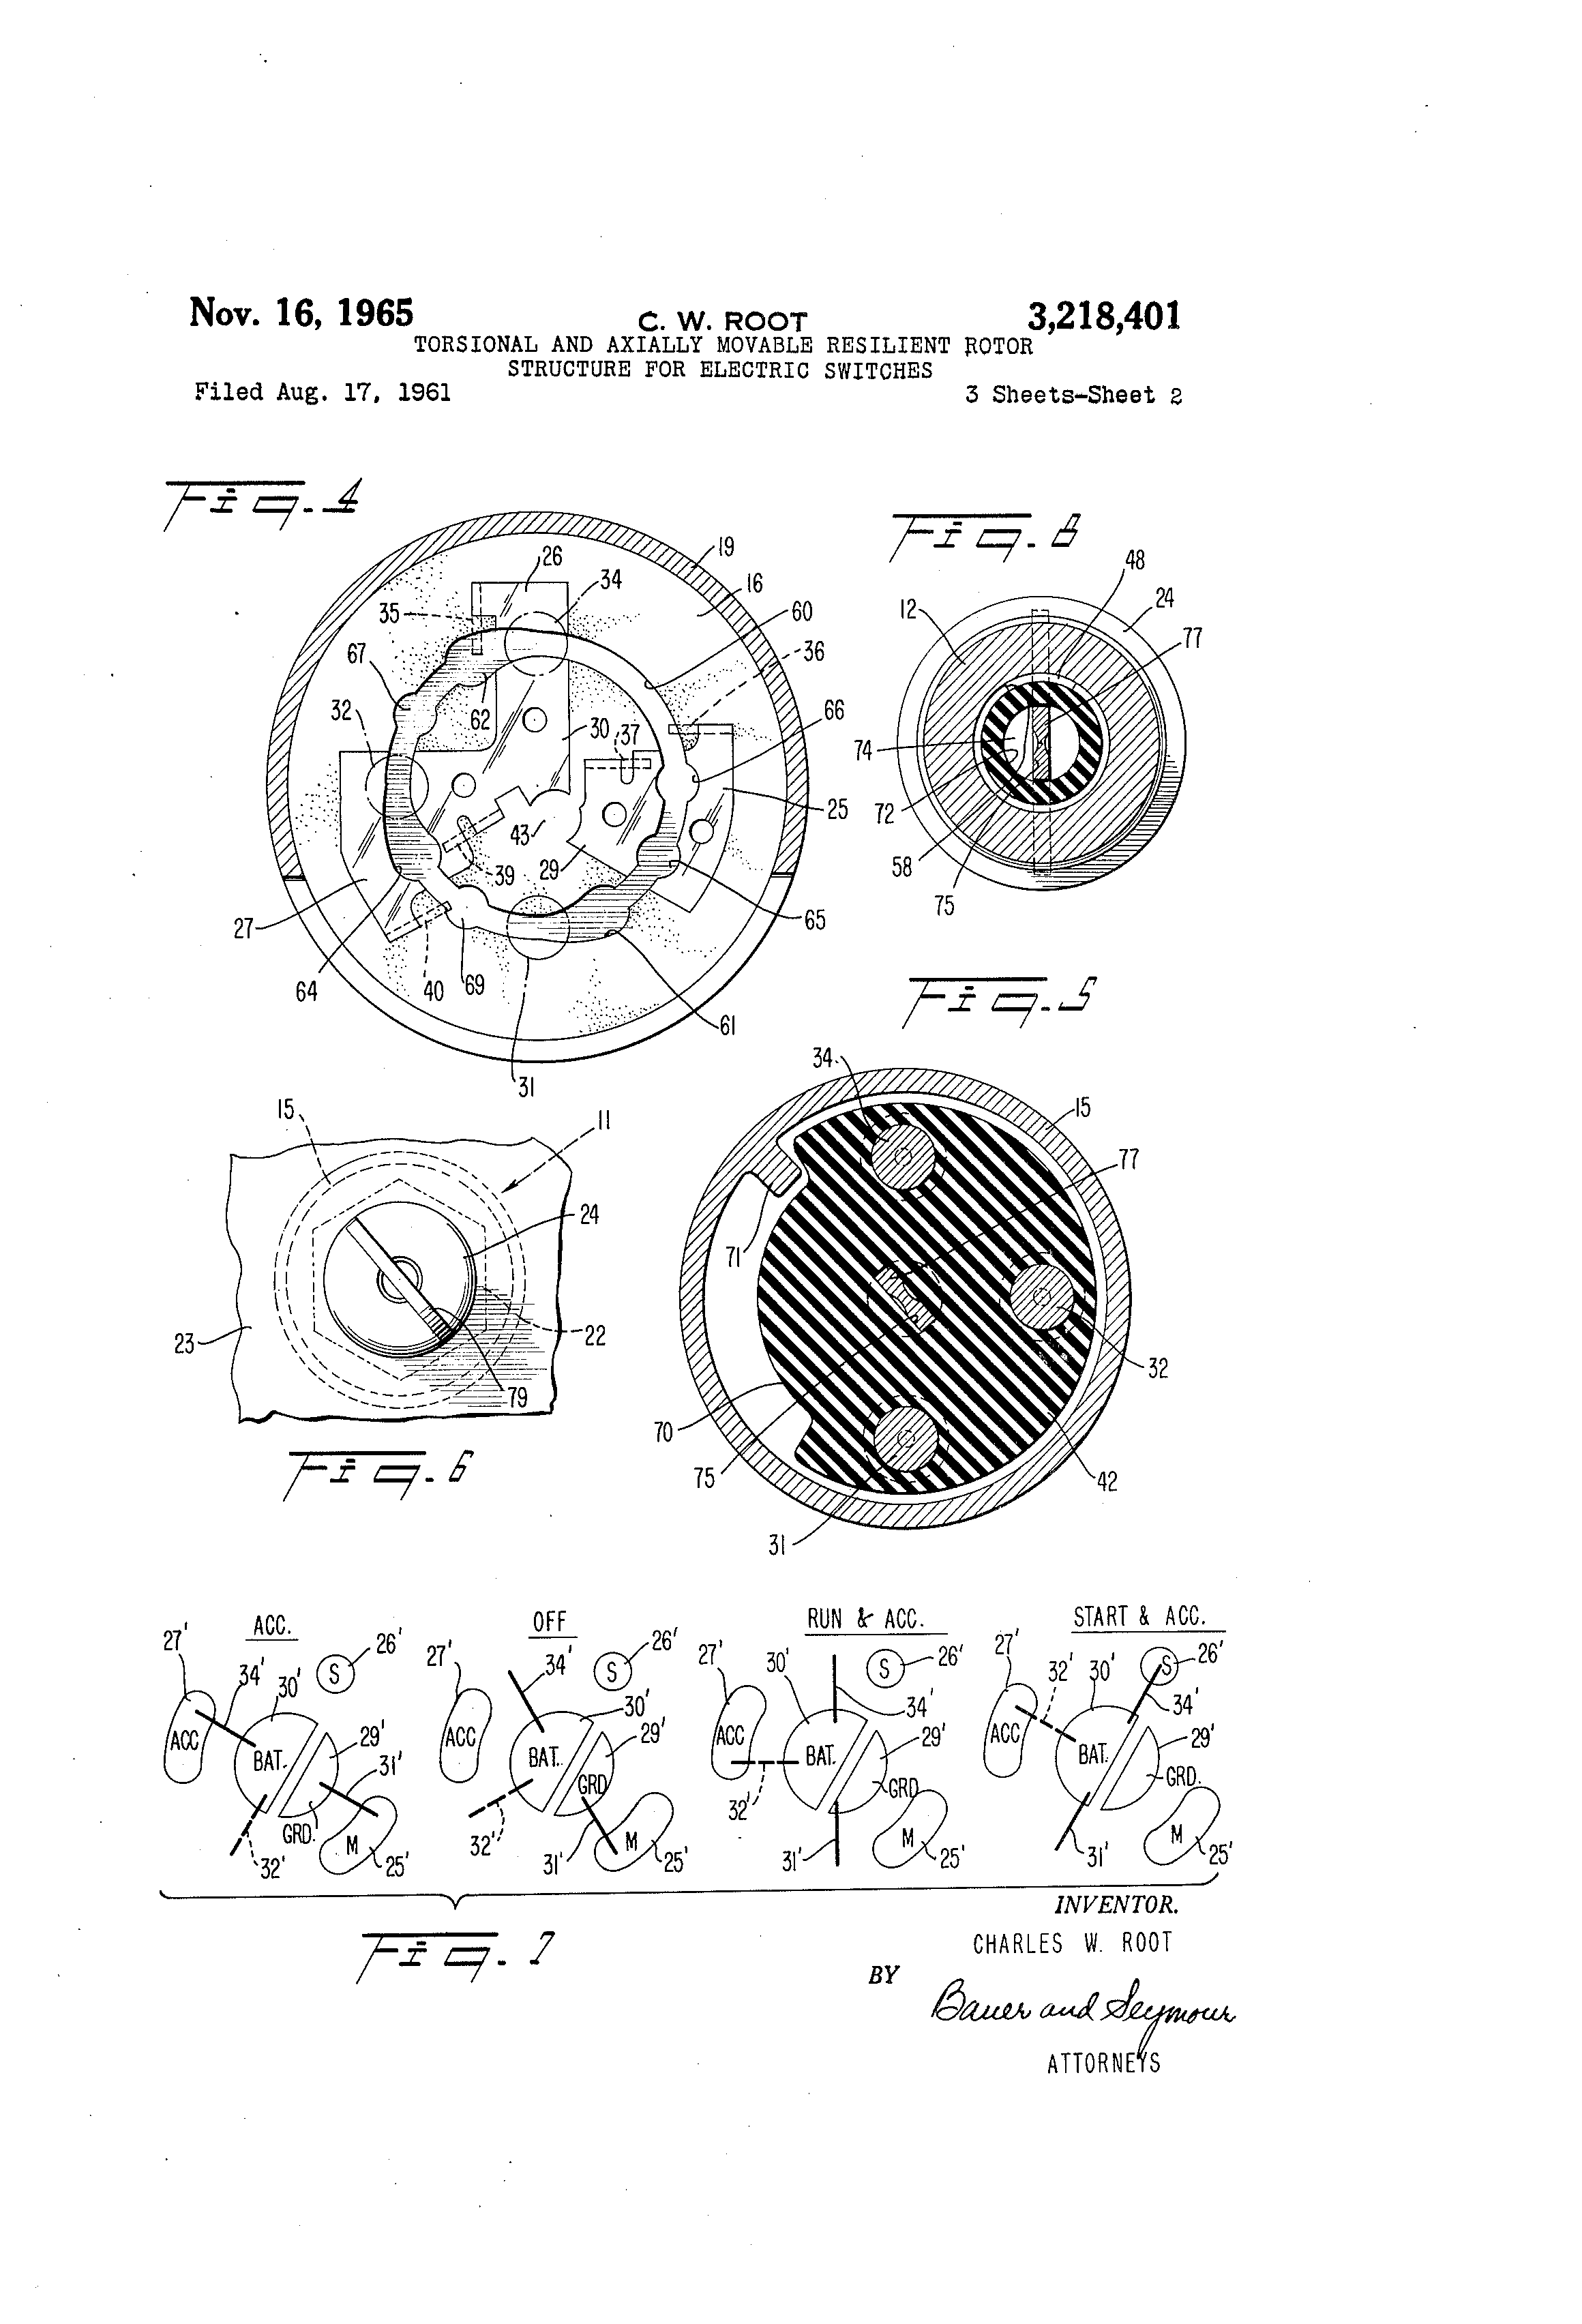 patent us torsional and axially movable resilient rotor patent drawing